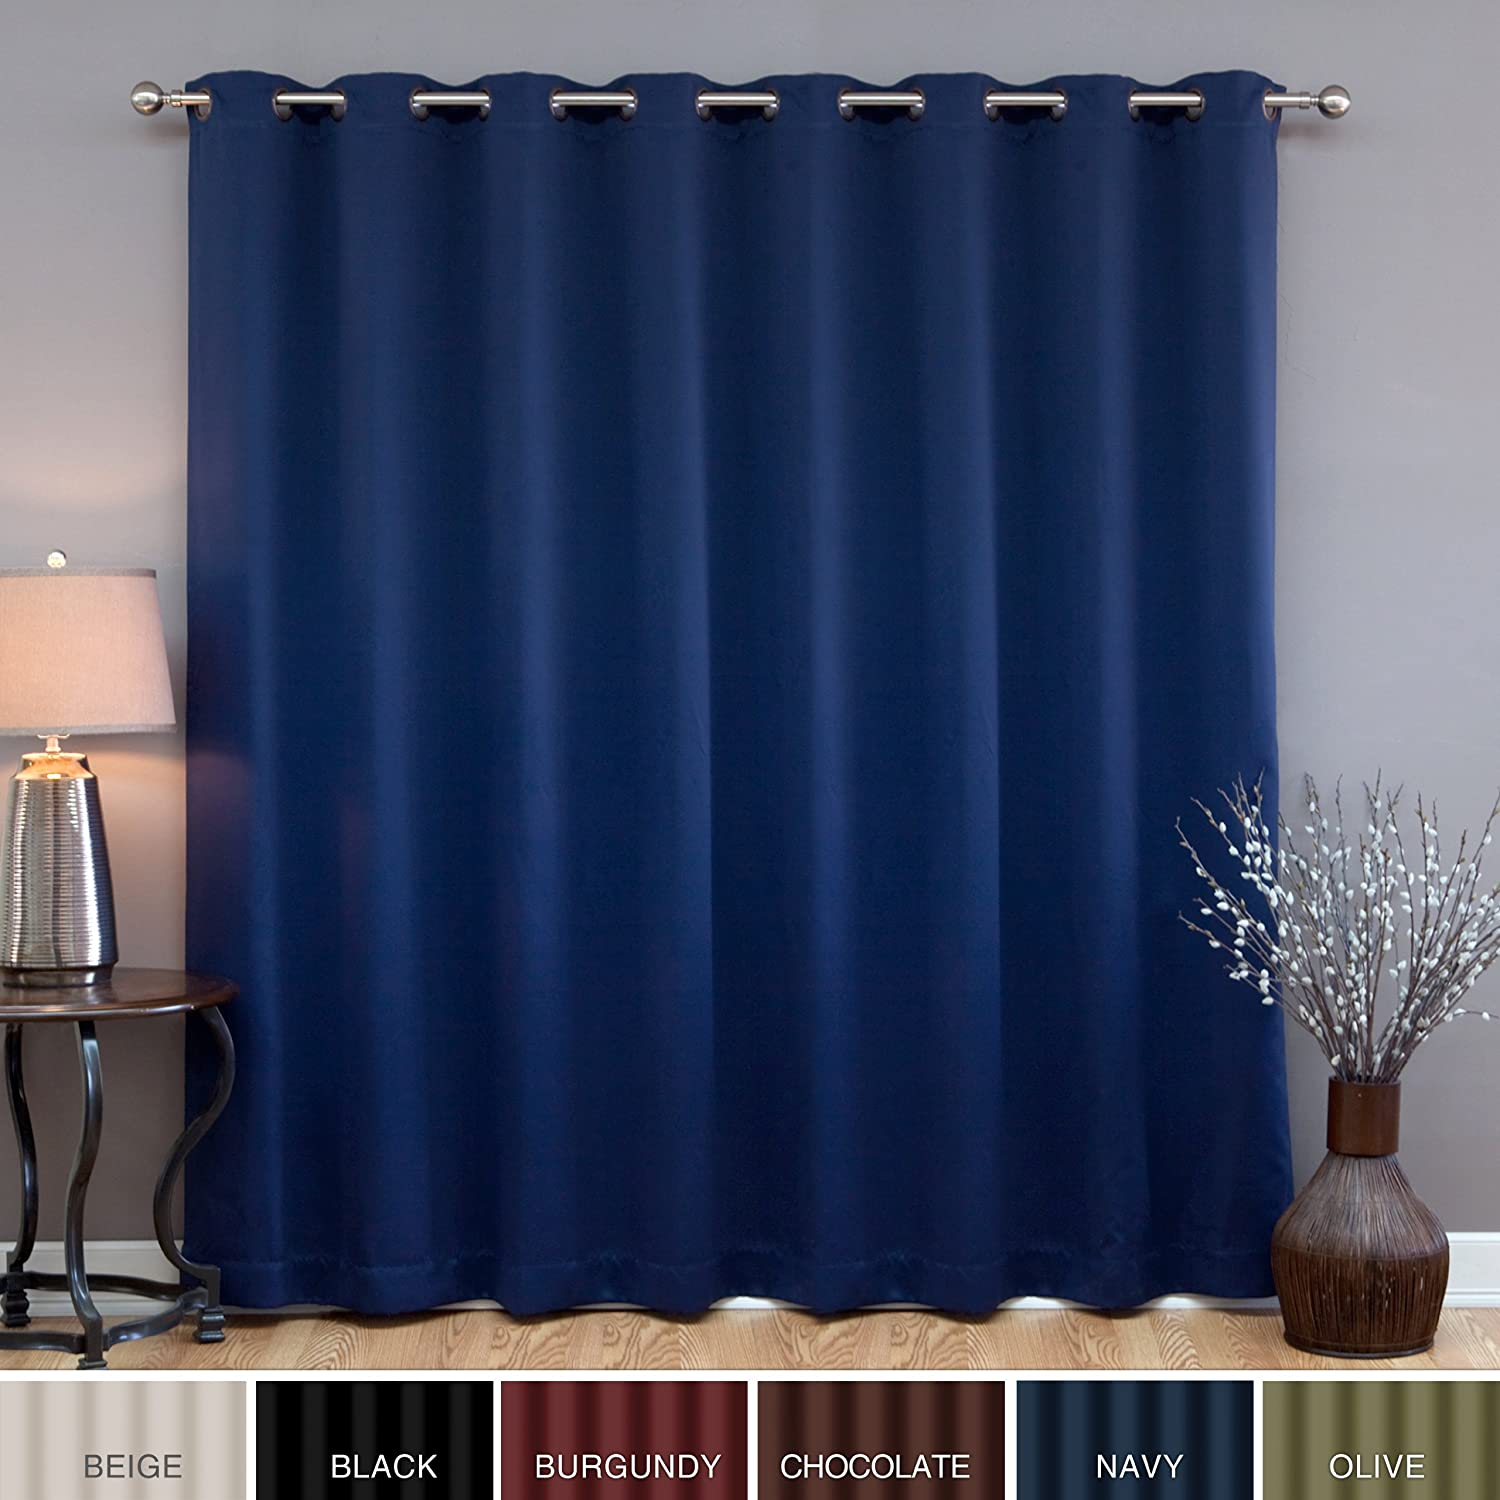 ... of the best selling blackout curtains the curtains are available at